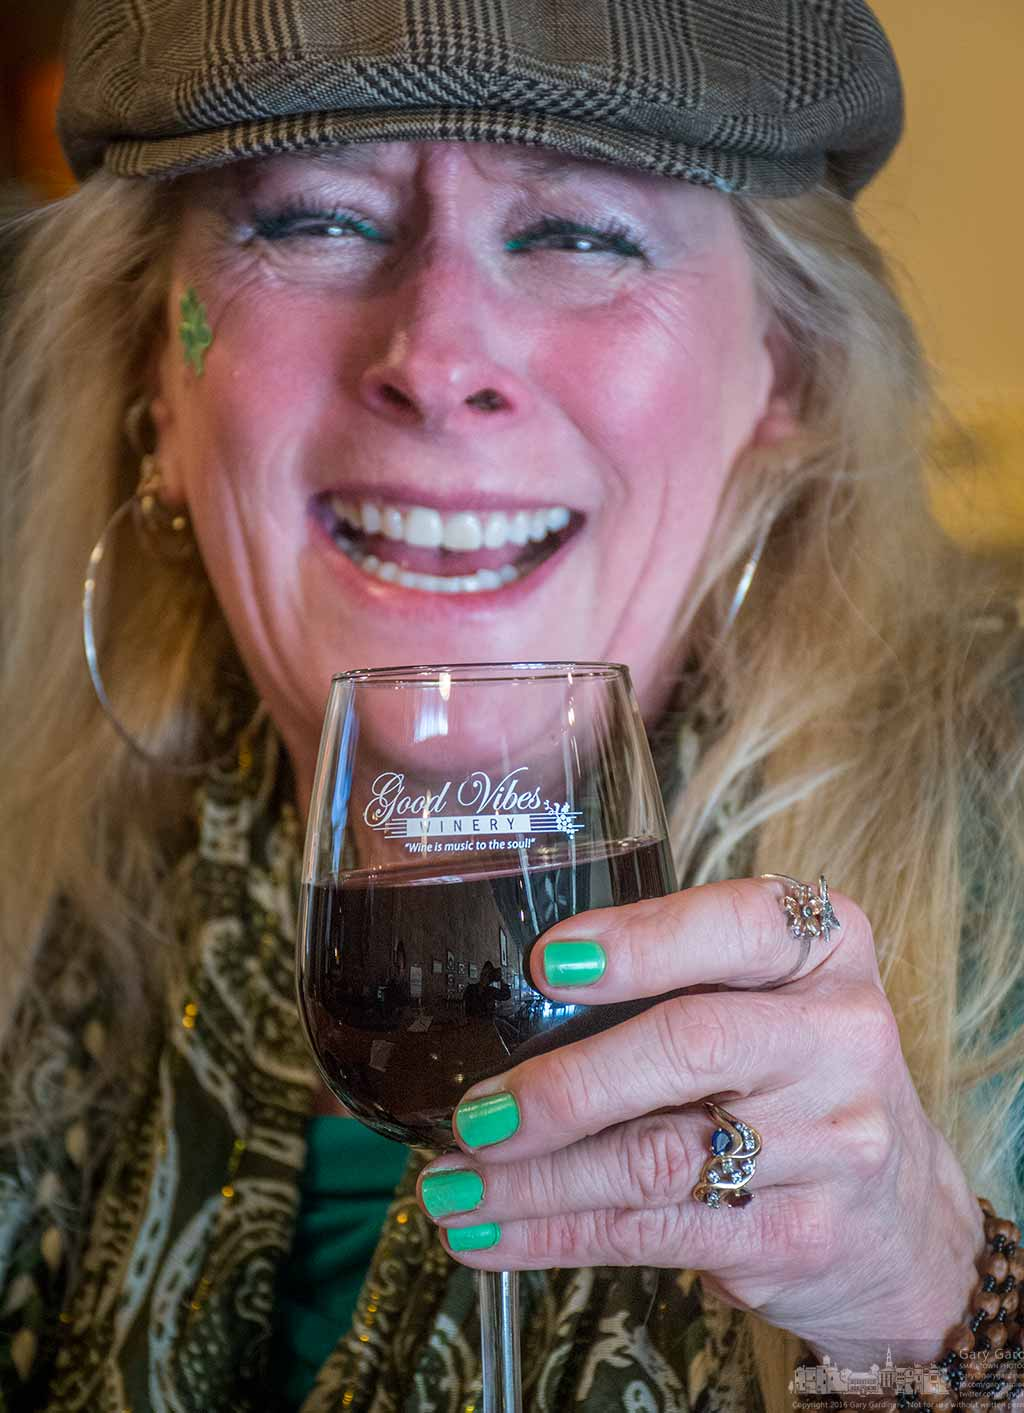 Green fingernail polish, a sticker on the cheek, green eye shadow, appropriately colored clothes, and a hearty laugh help this woman celebrate St. Patrick's Day with a glass of wine at Good Vibes Winery in Uptown Westerville. My Final Photo for March 17, 2016.